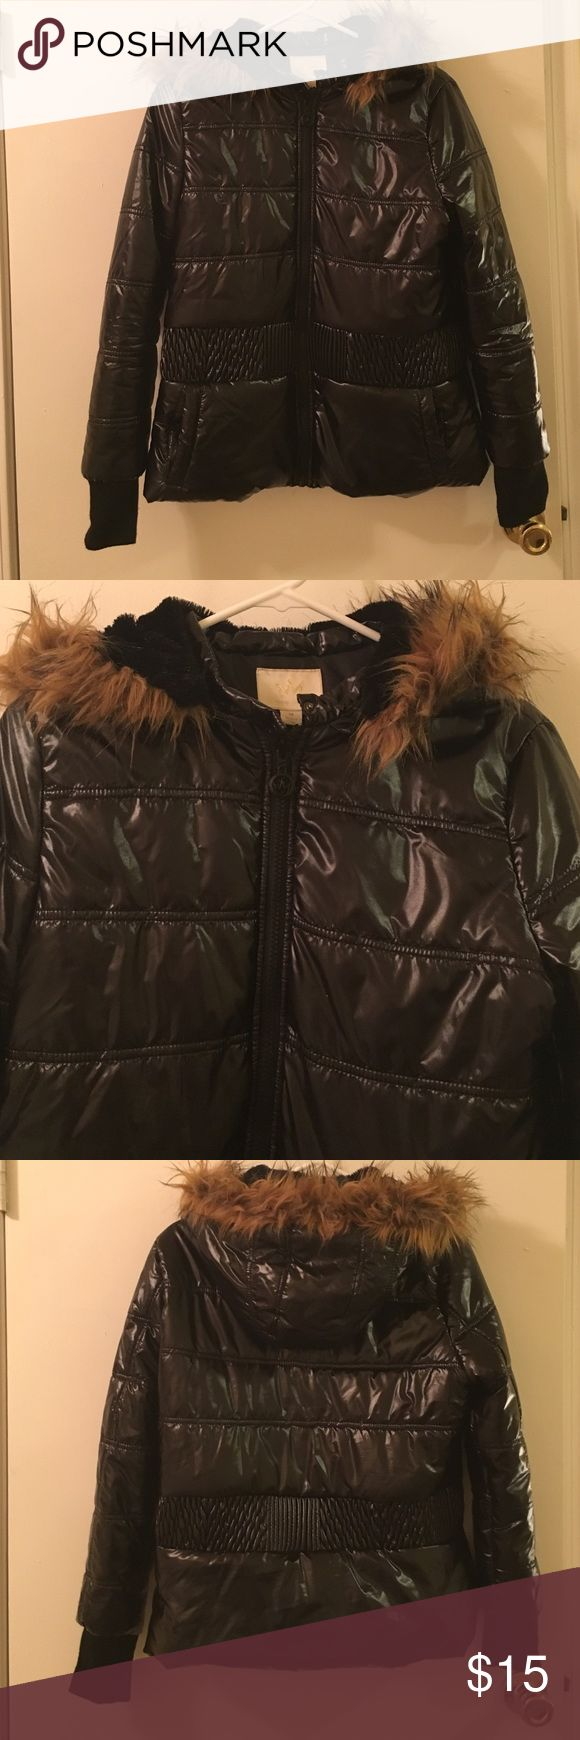 Nicki Minaj  black jacket Like new nothing rong micki minaj  Jackets & Coats Capes